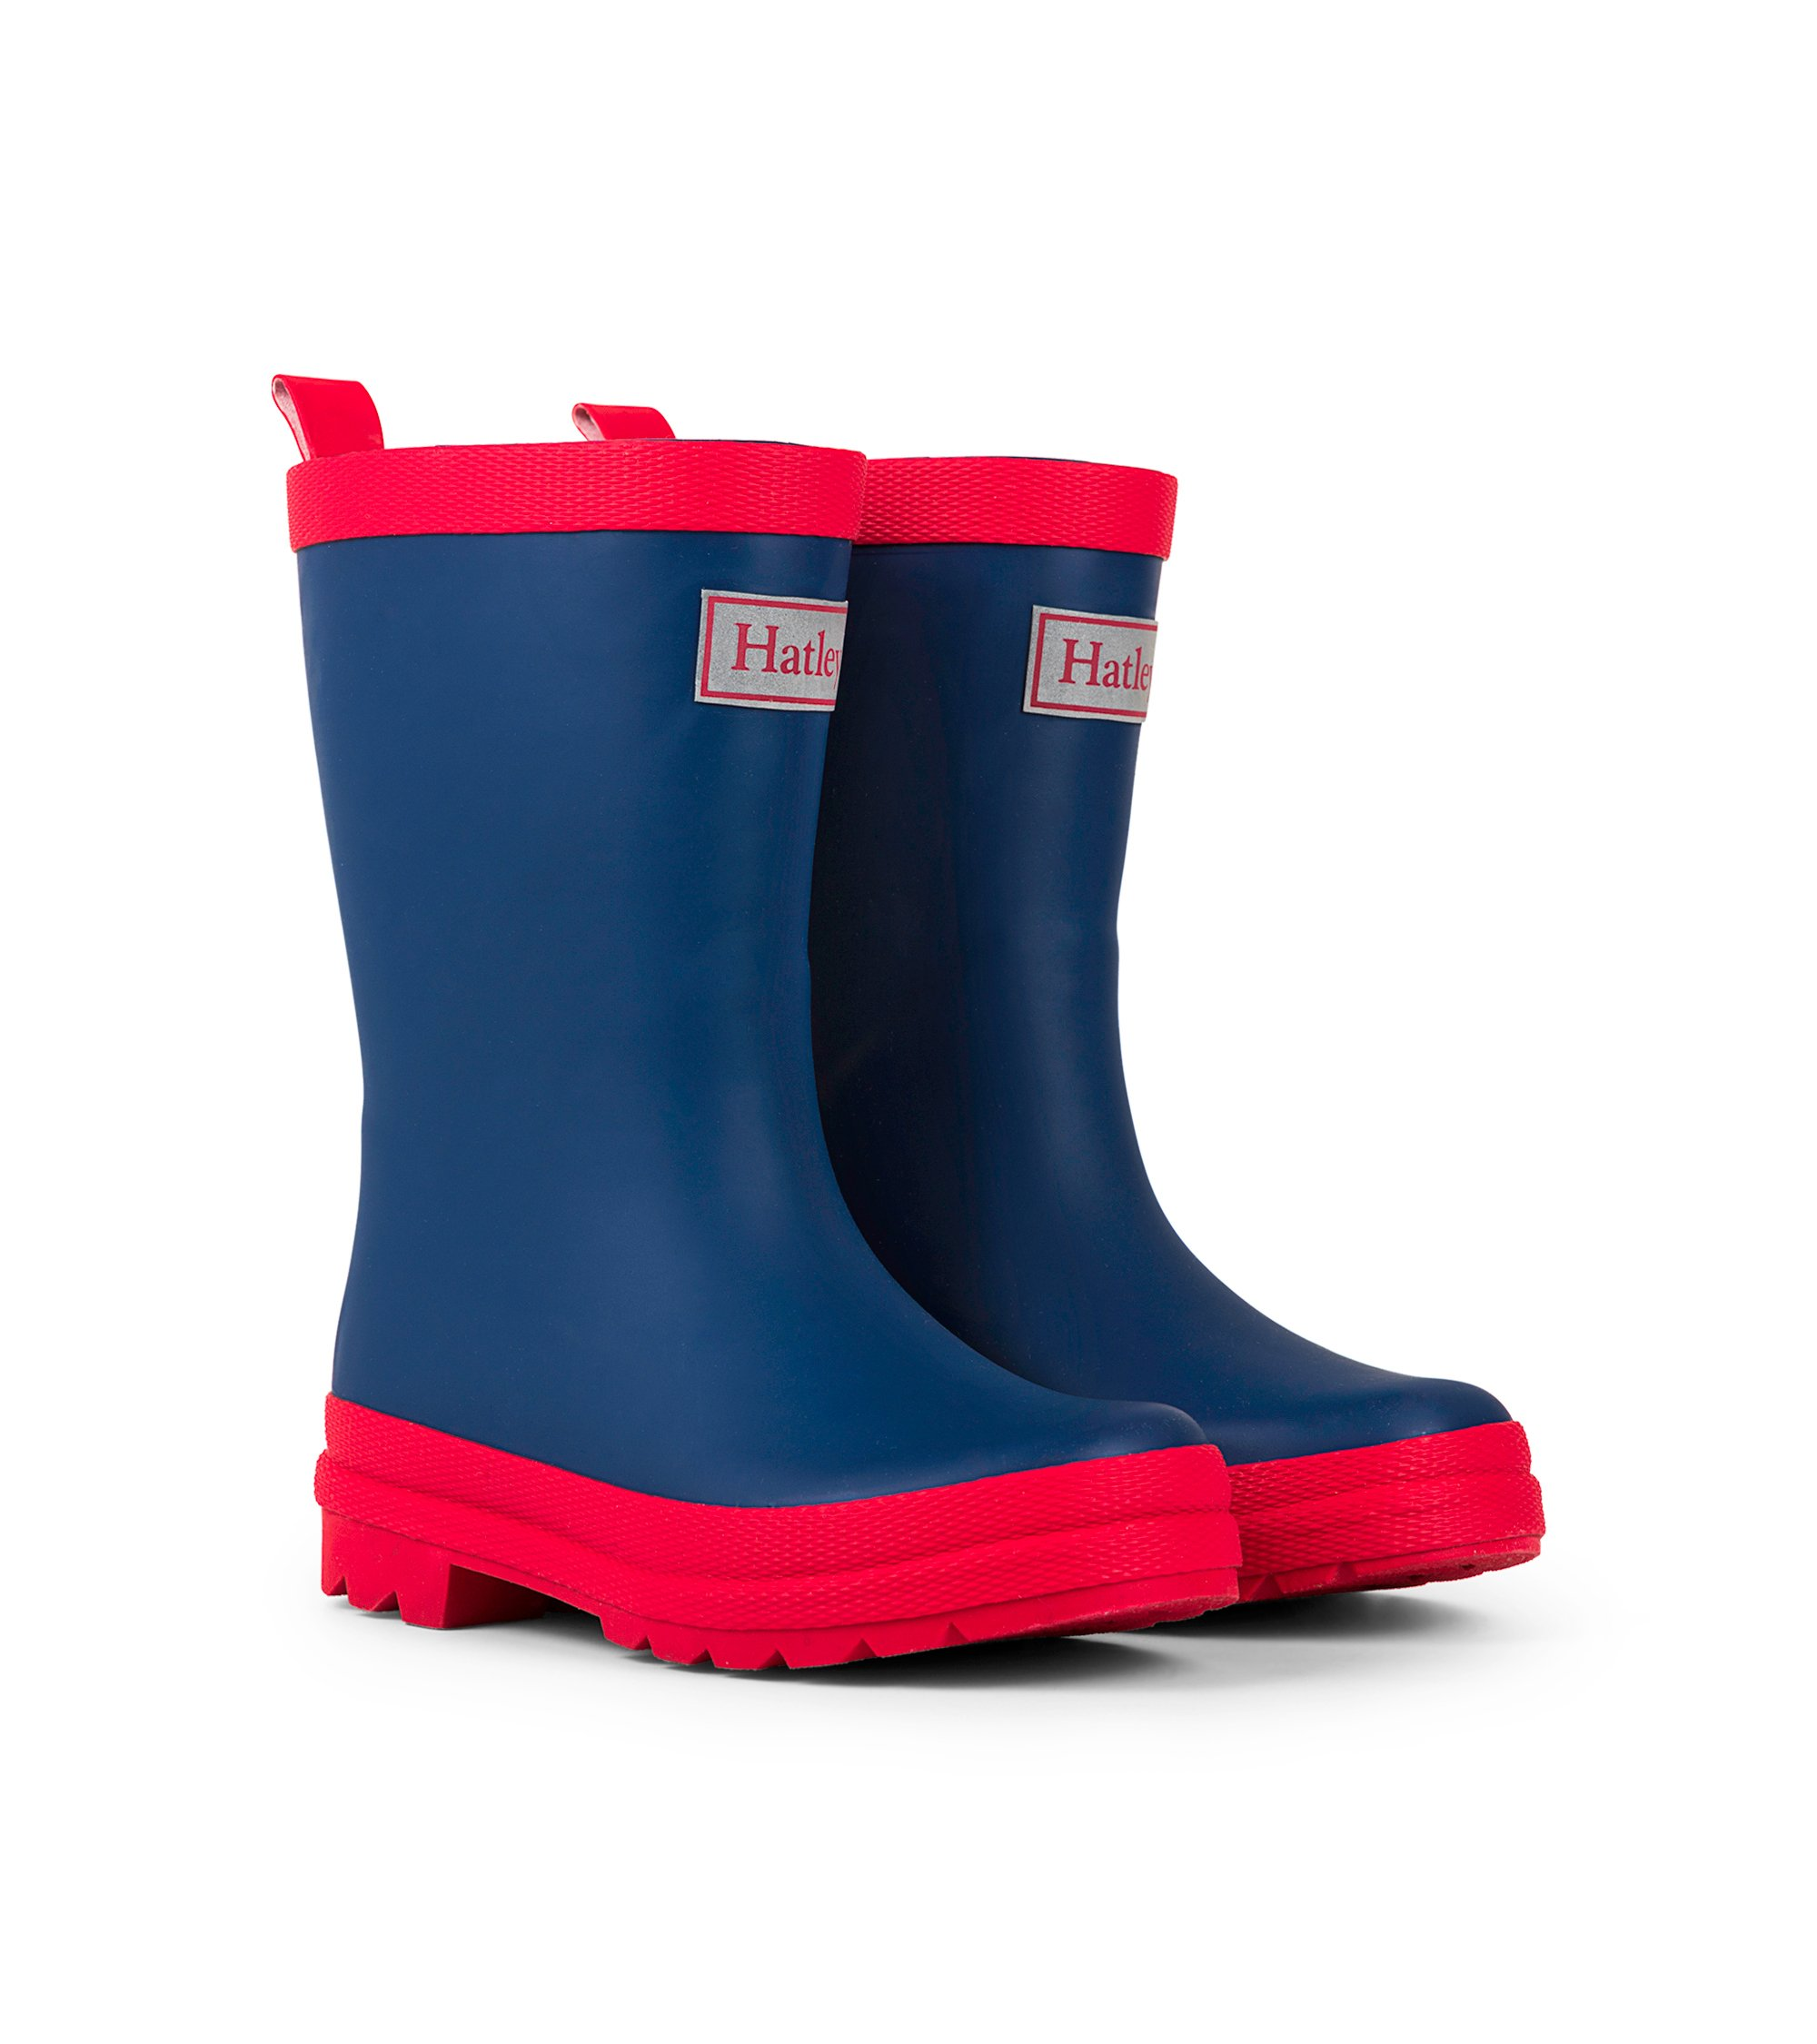 Hatley Classic Rain Boots, Navy and Red, 1 M US Big Kid